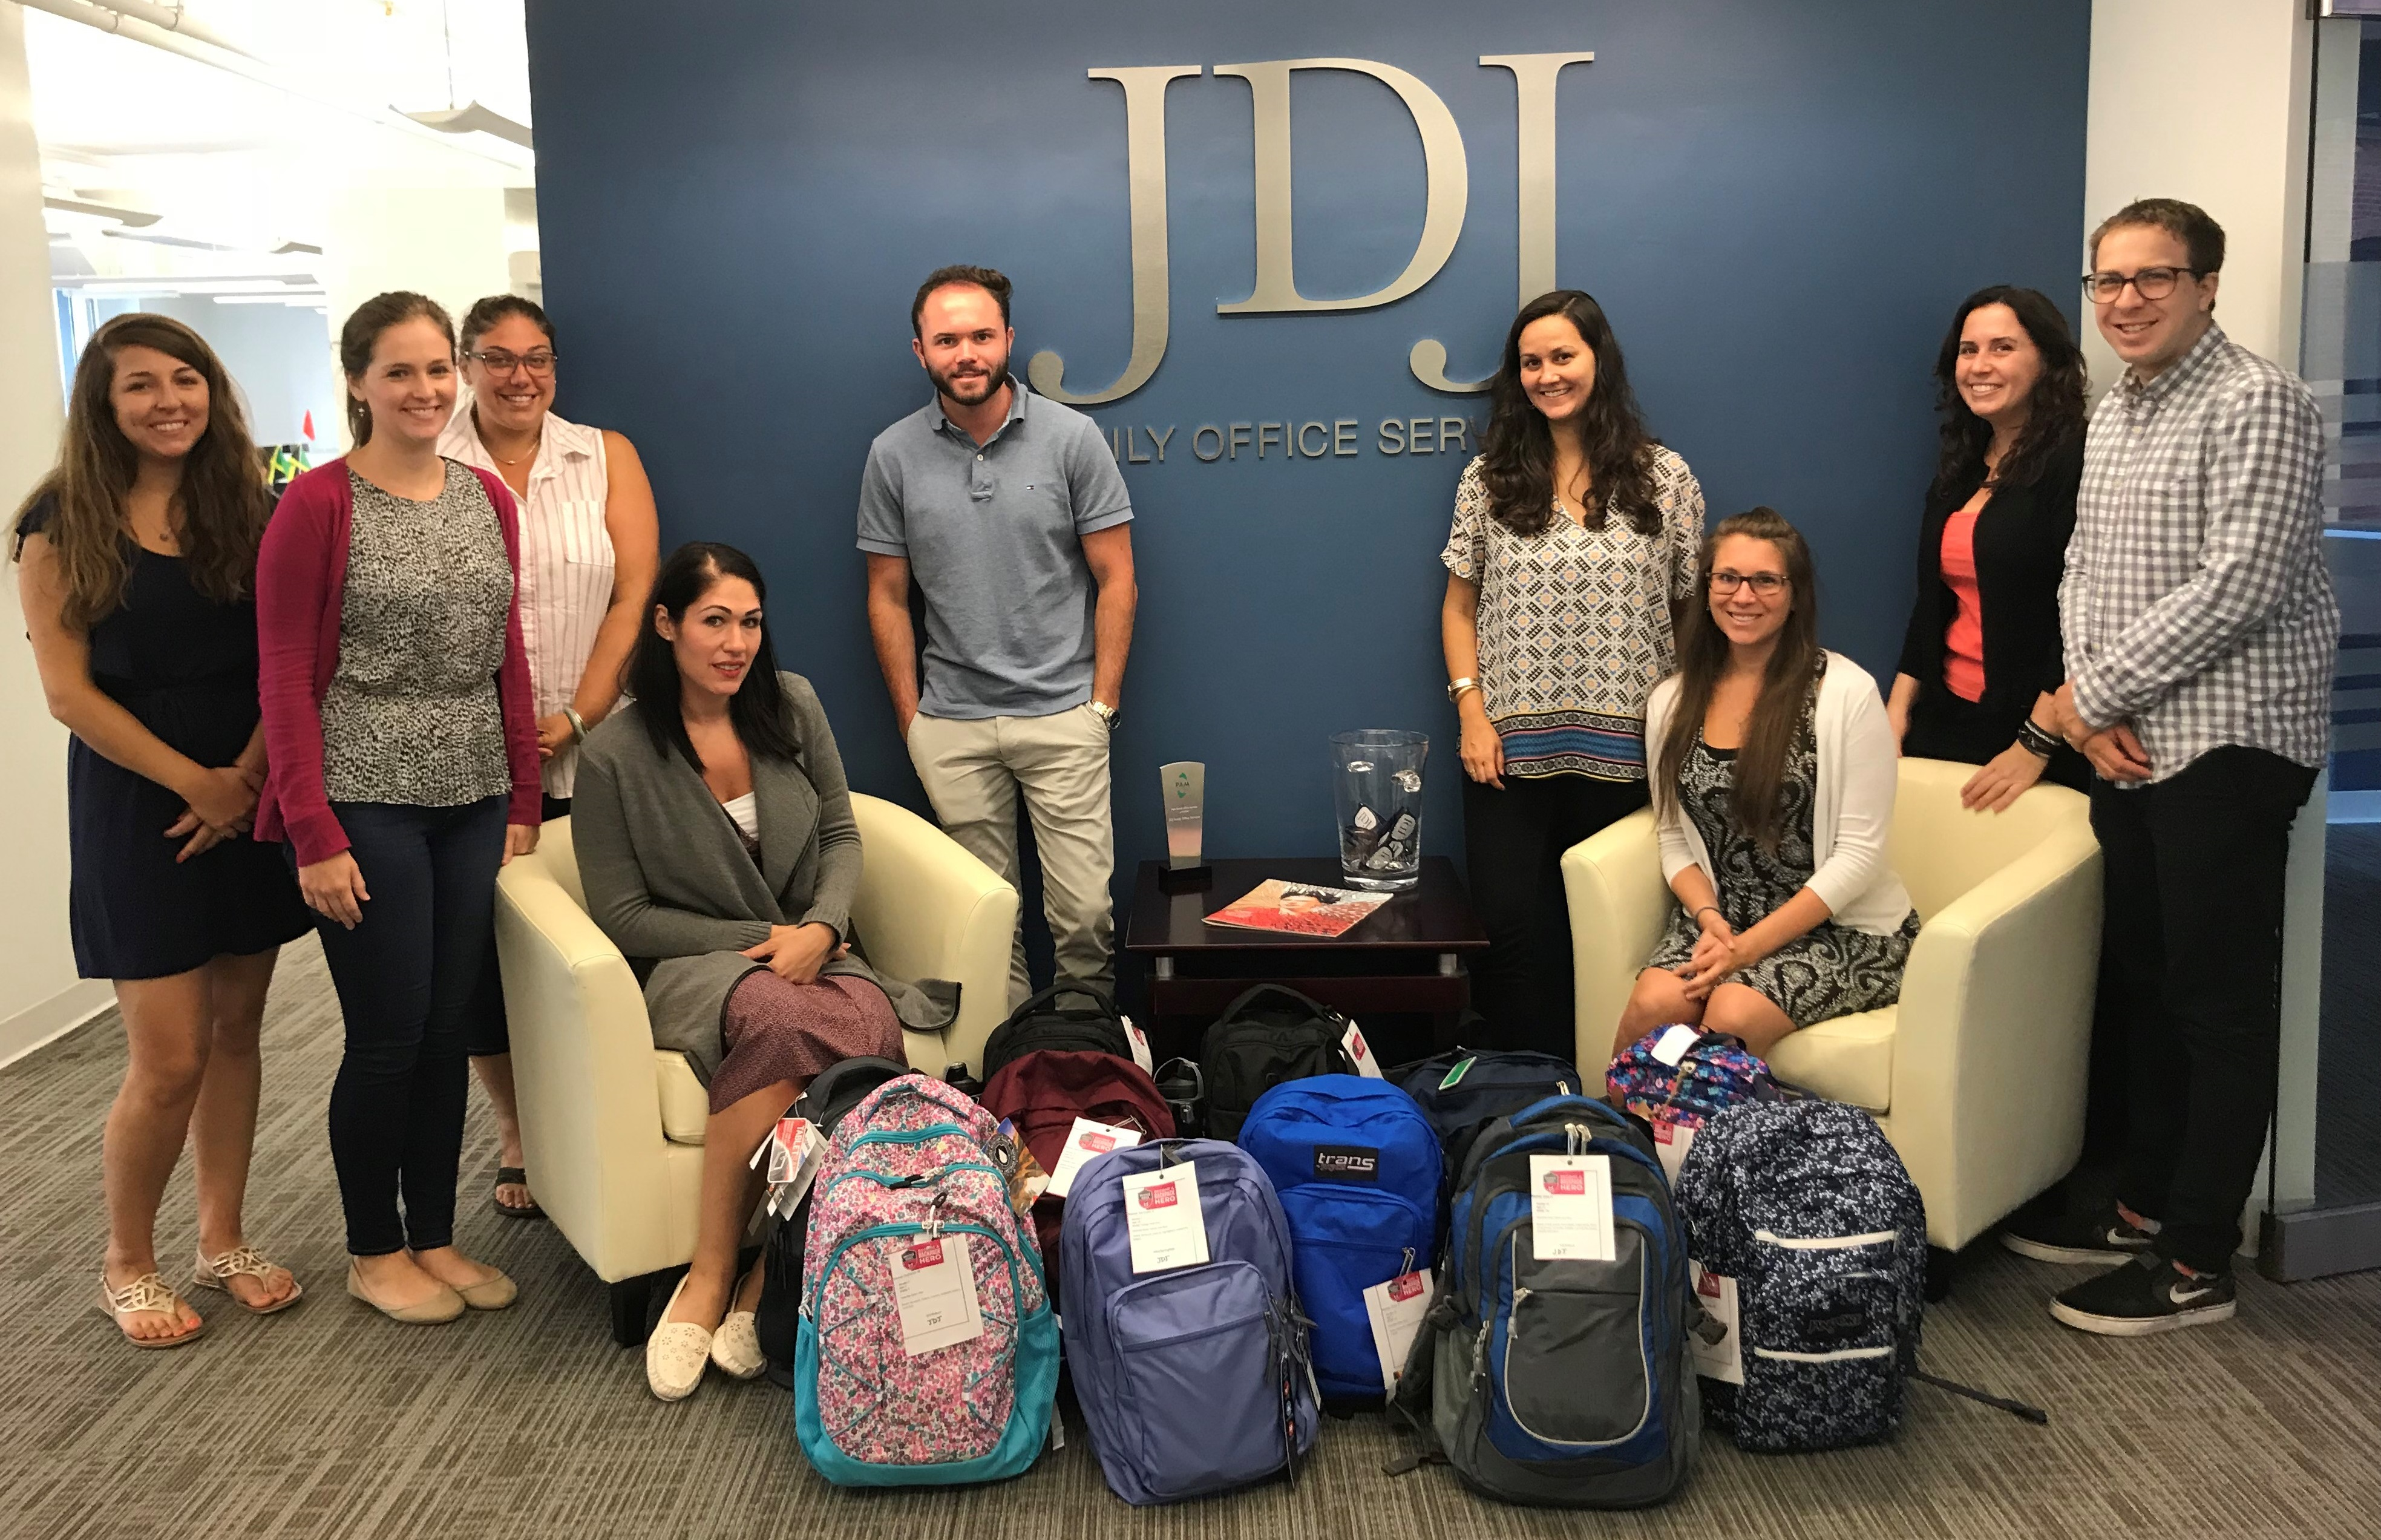 Pictured above, a few of this year's JDJ Backpack Heroes with backpacks full of supplies, (from left): Gina Perrotta, Elizabeth Fogarty, Elana Vasi, Rachel DeIeso, Christian Flavin, Mallory Garneau, Angela Simmons, Vicki Saris, Stafford Turnage. Additional heroes are not pictured.